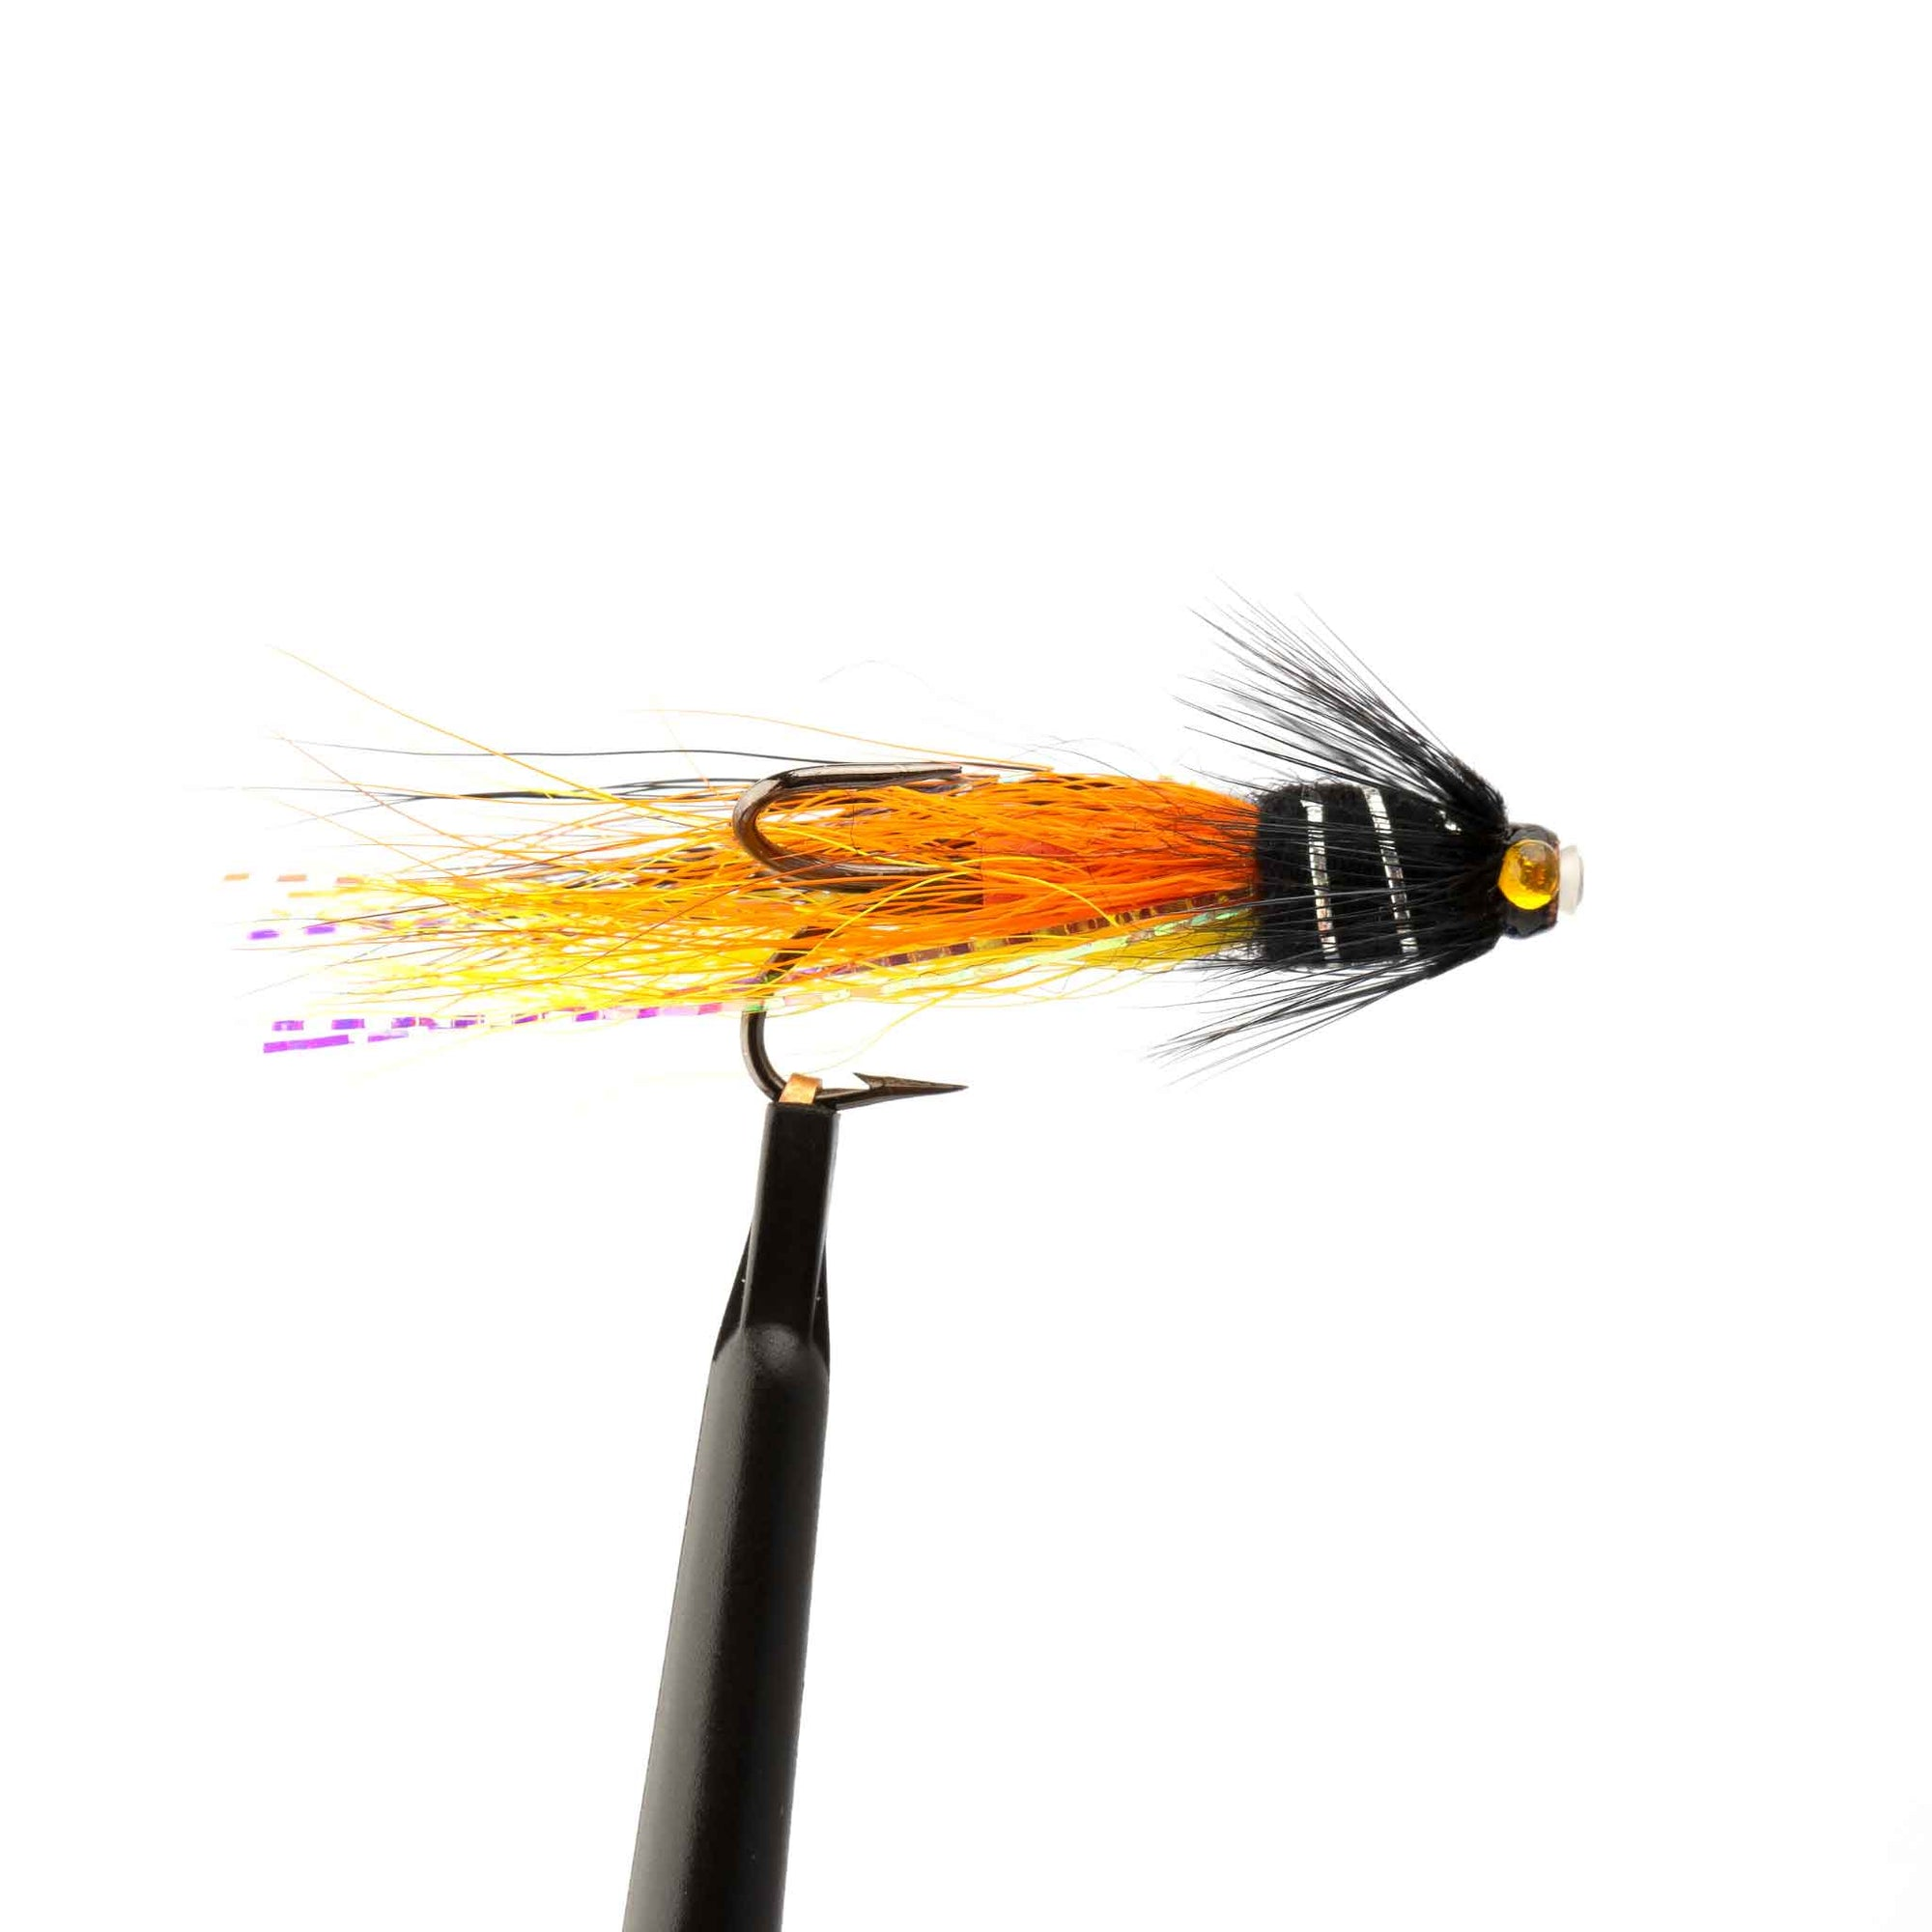 Snaelda-Krinkle-Yellow/Orange/Black